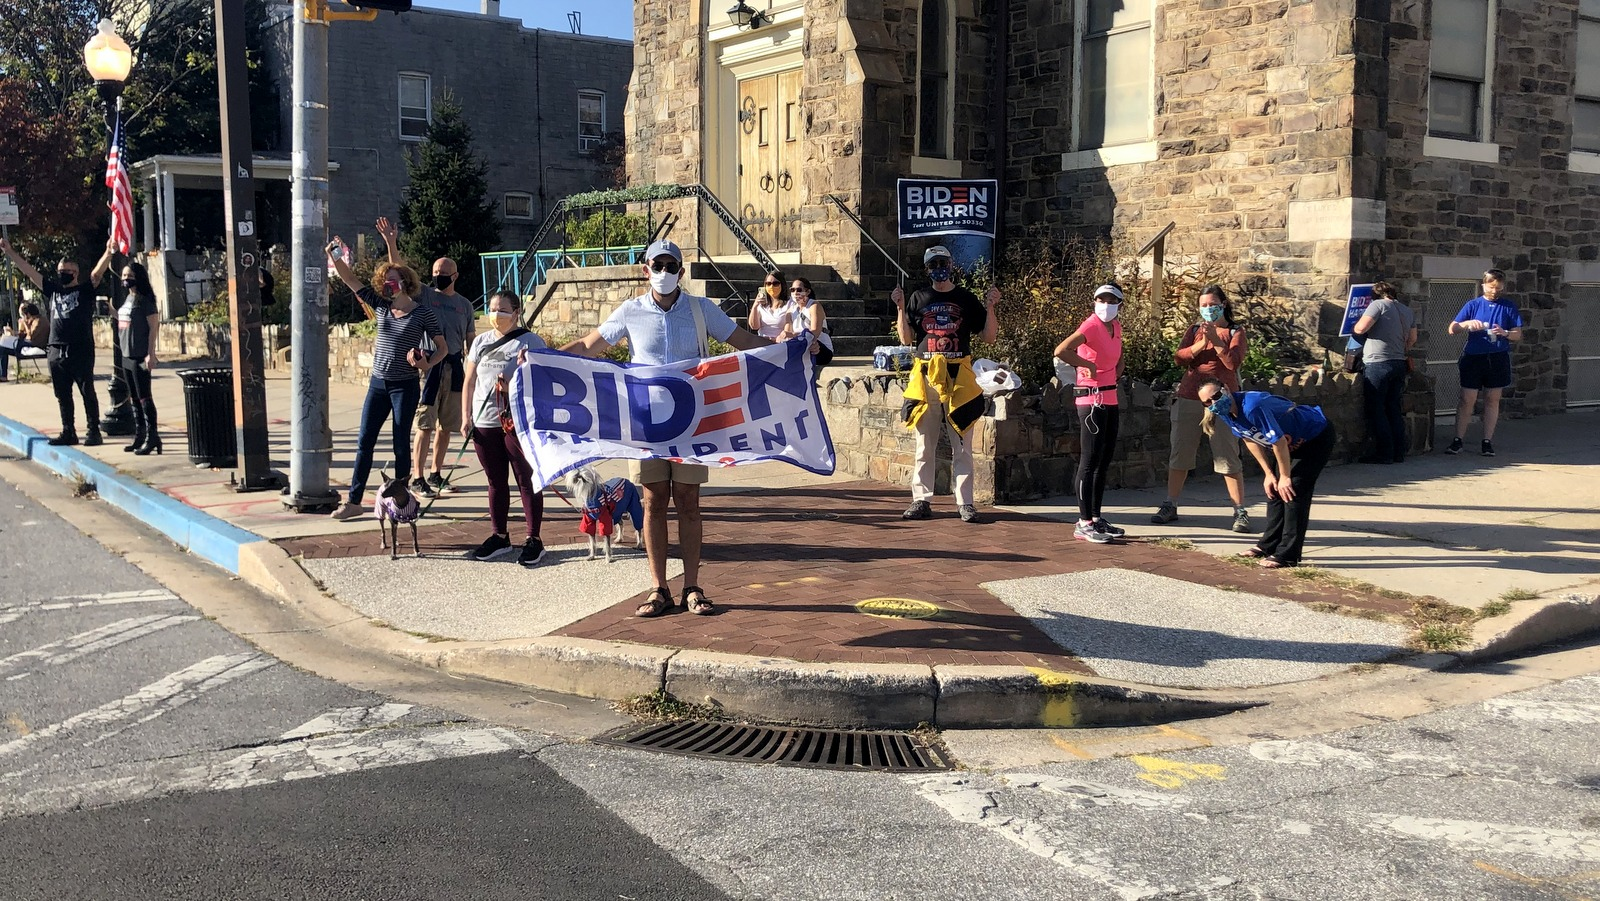 In Baltimore, passing motorists honked in support, as revelers celebrated the Biden-Harris victory. (Fern Shen)